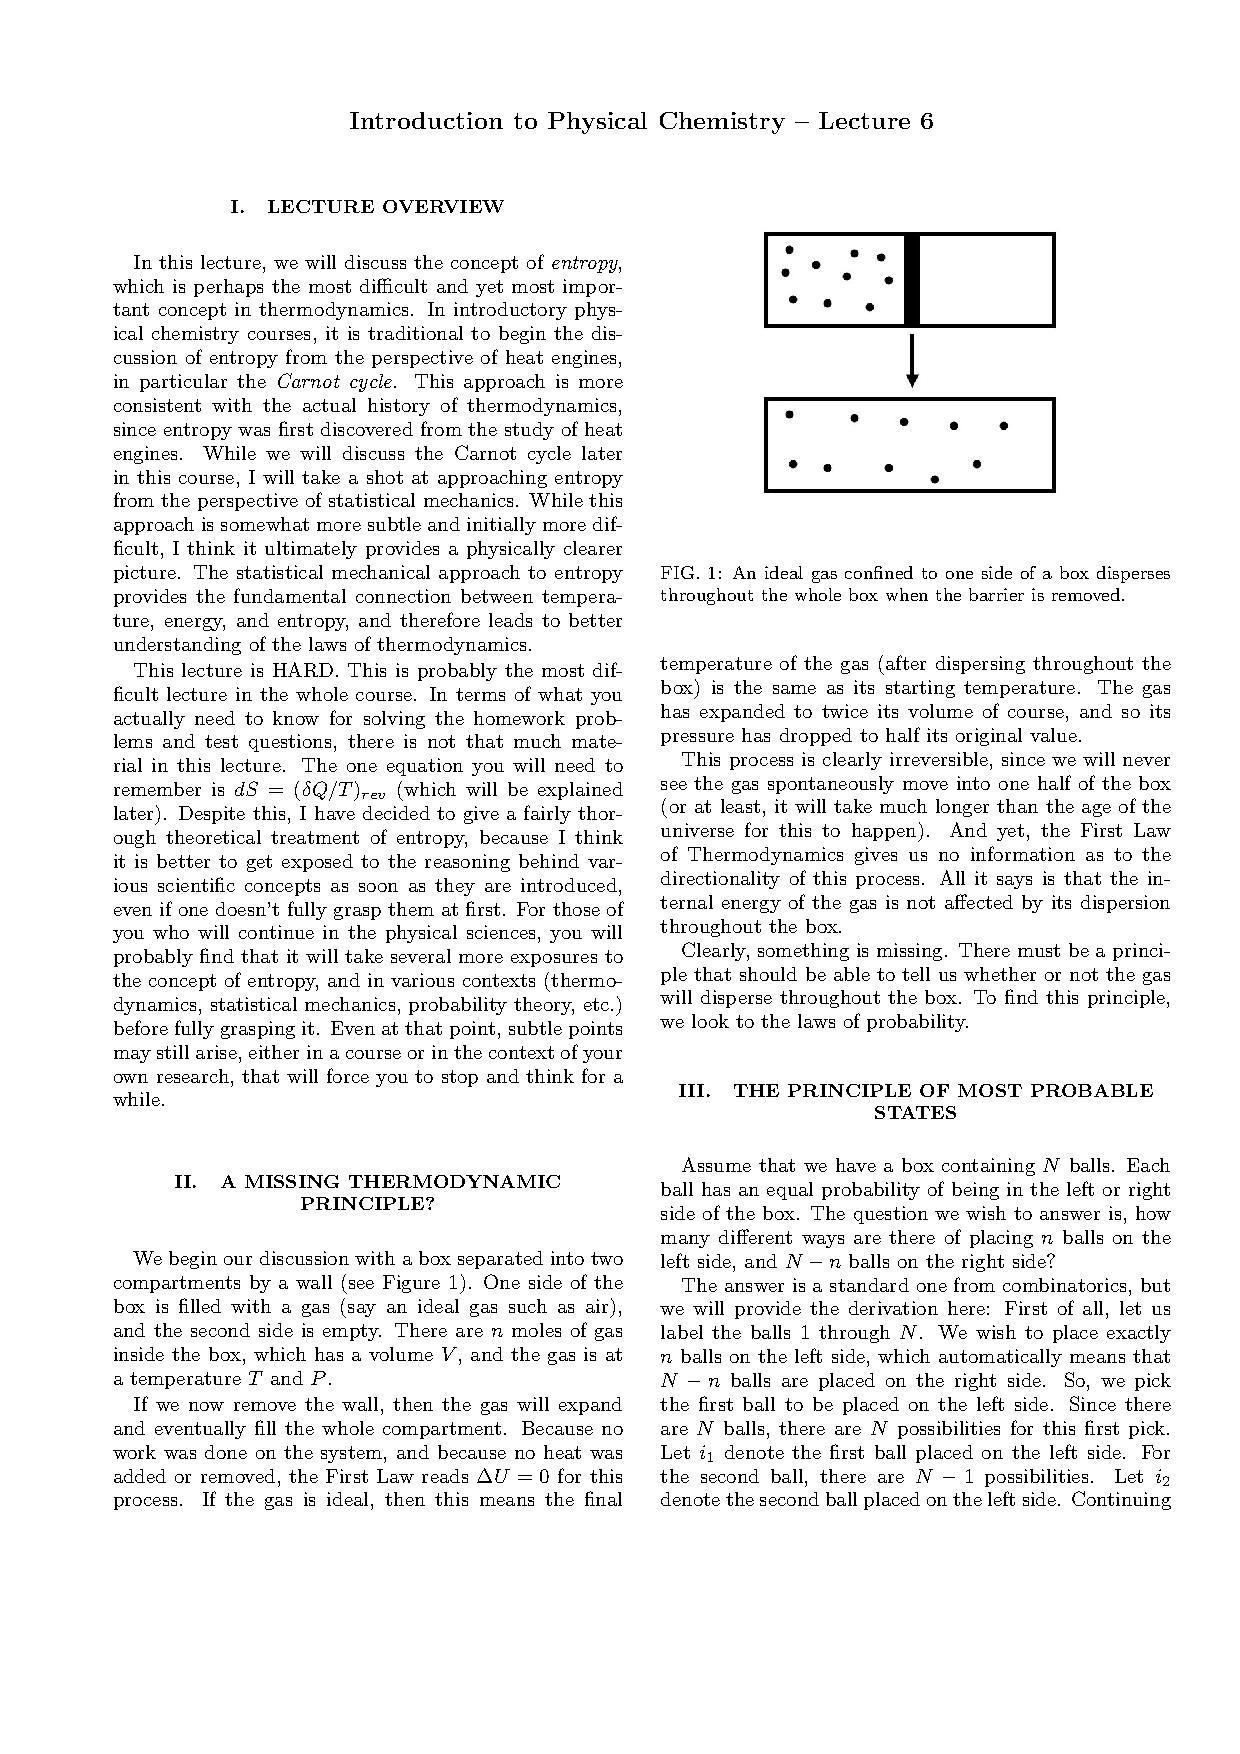 File:Introduction to Physical Chemistry Lecture 6 pdf - Wikimedia